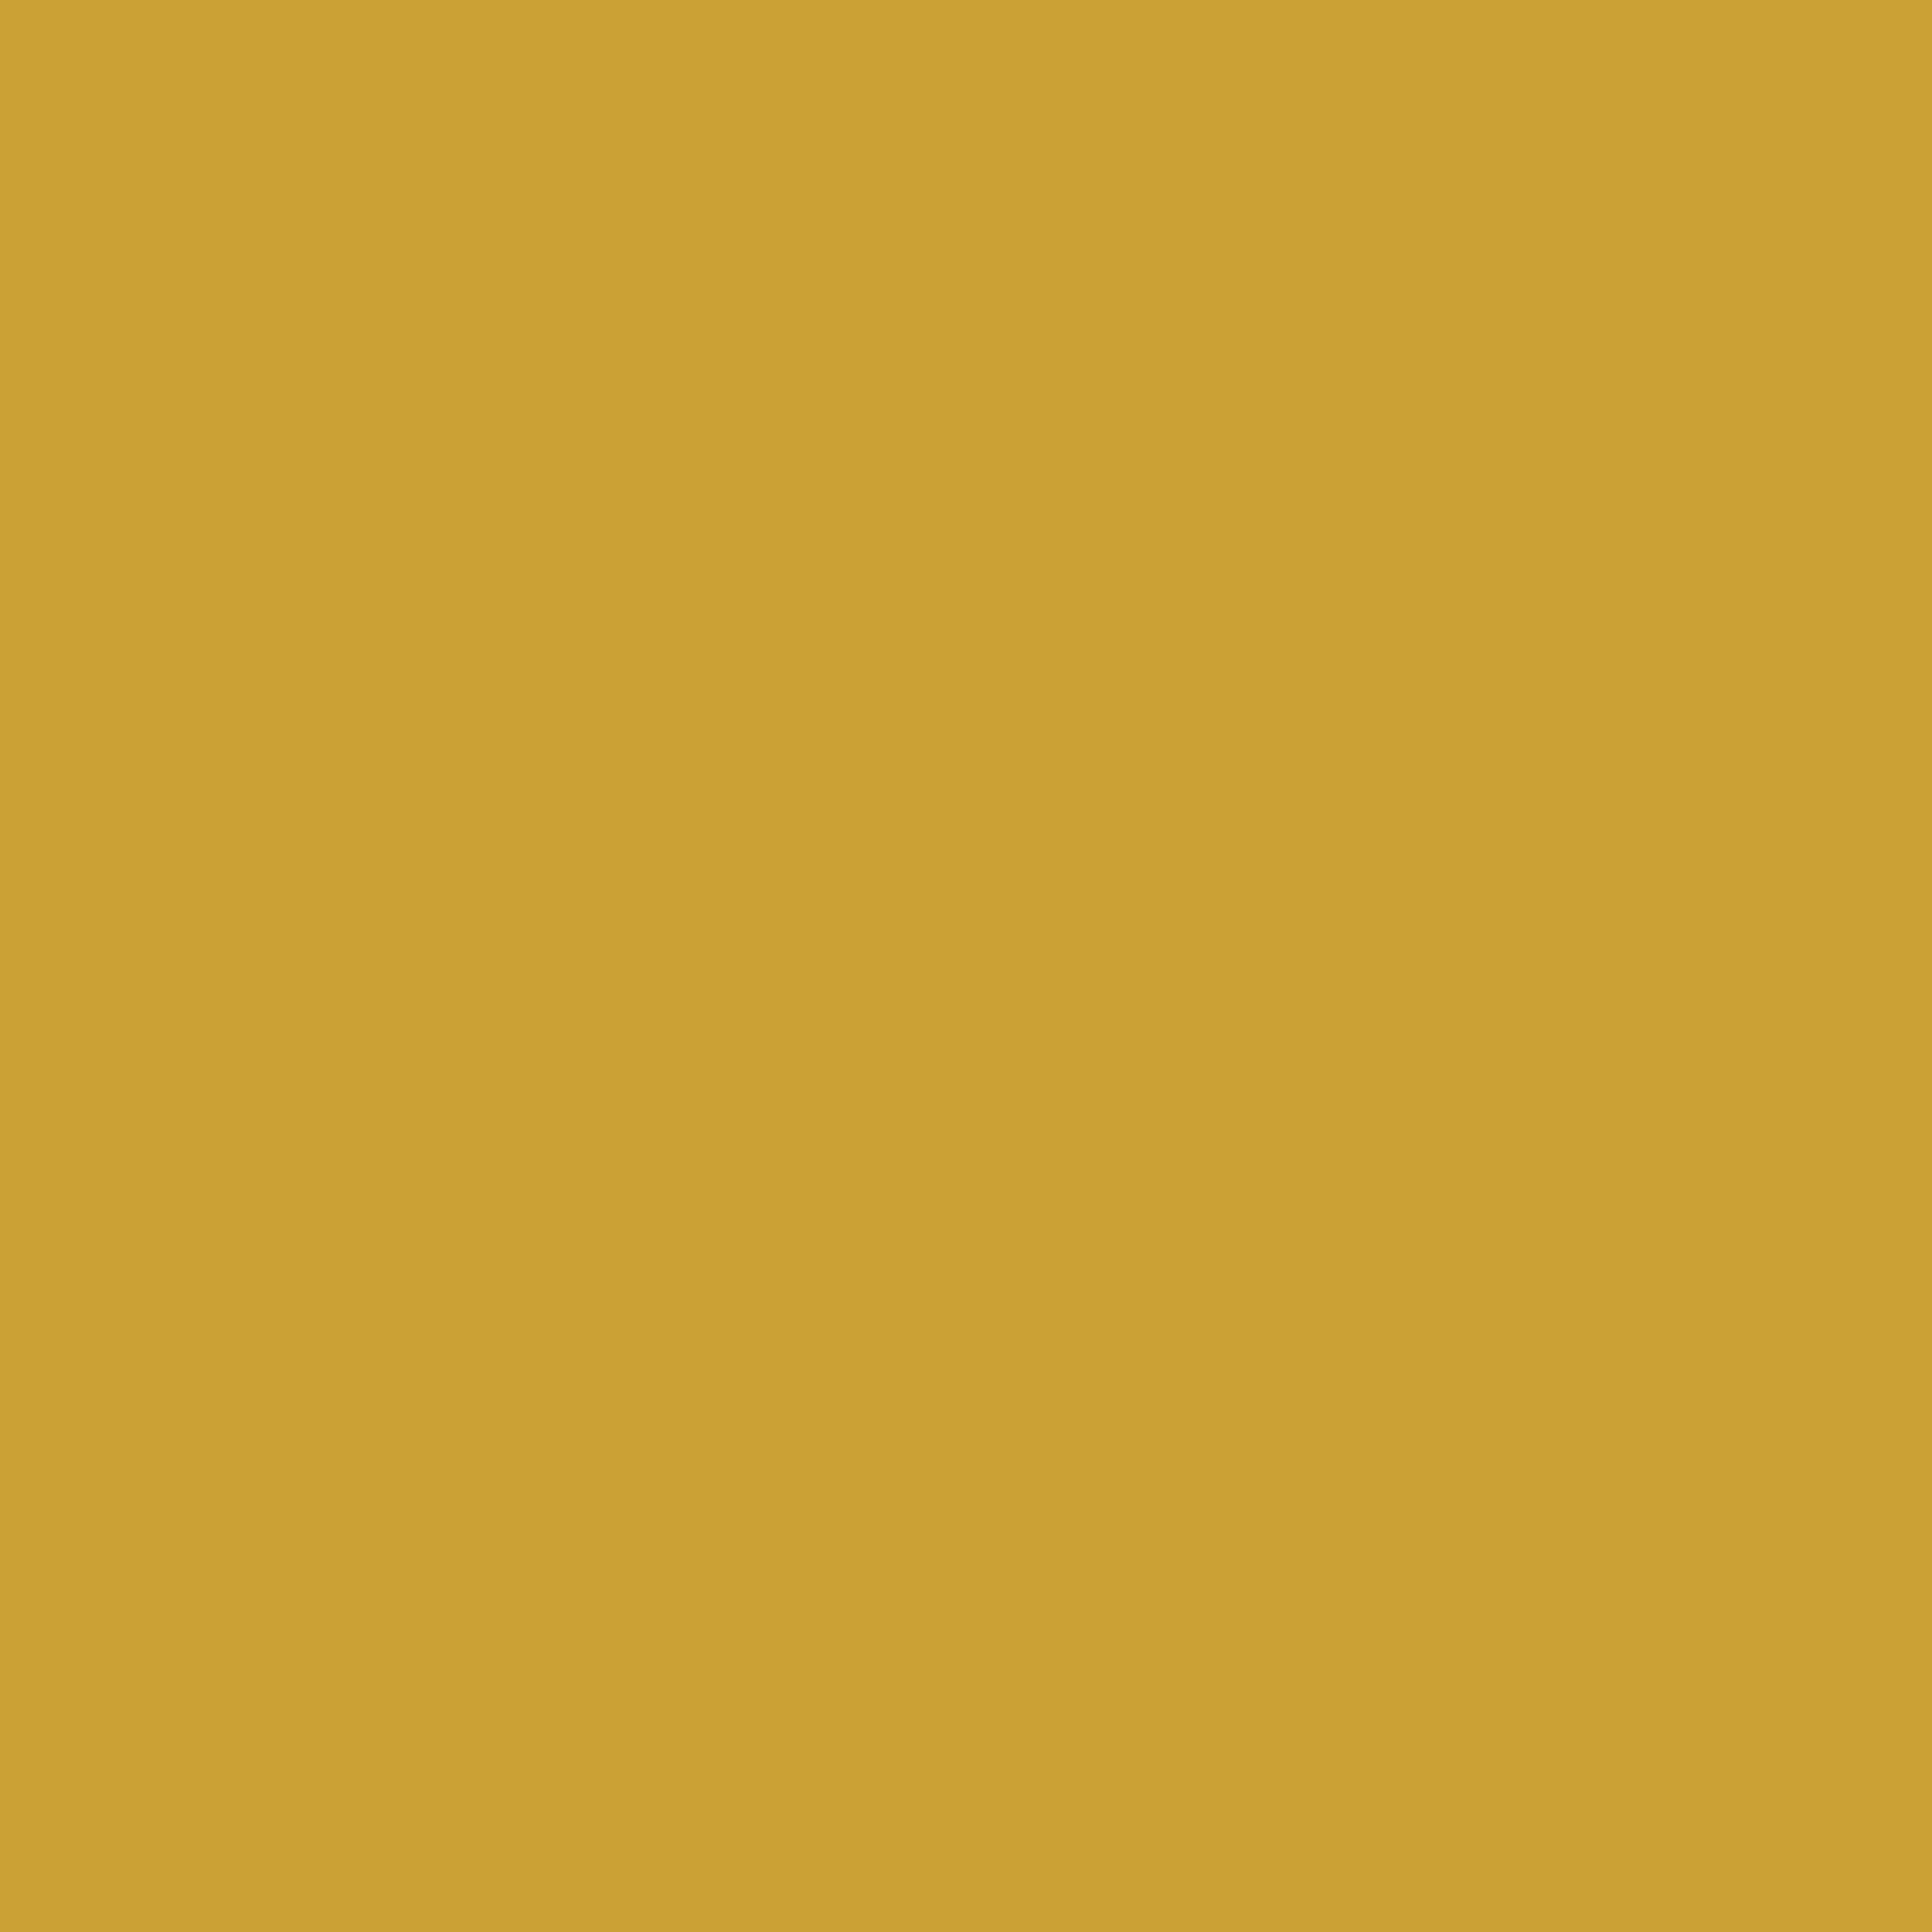 3600x3600 Satin Sheen Gold Solid Color Background